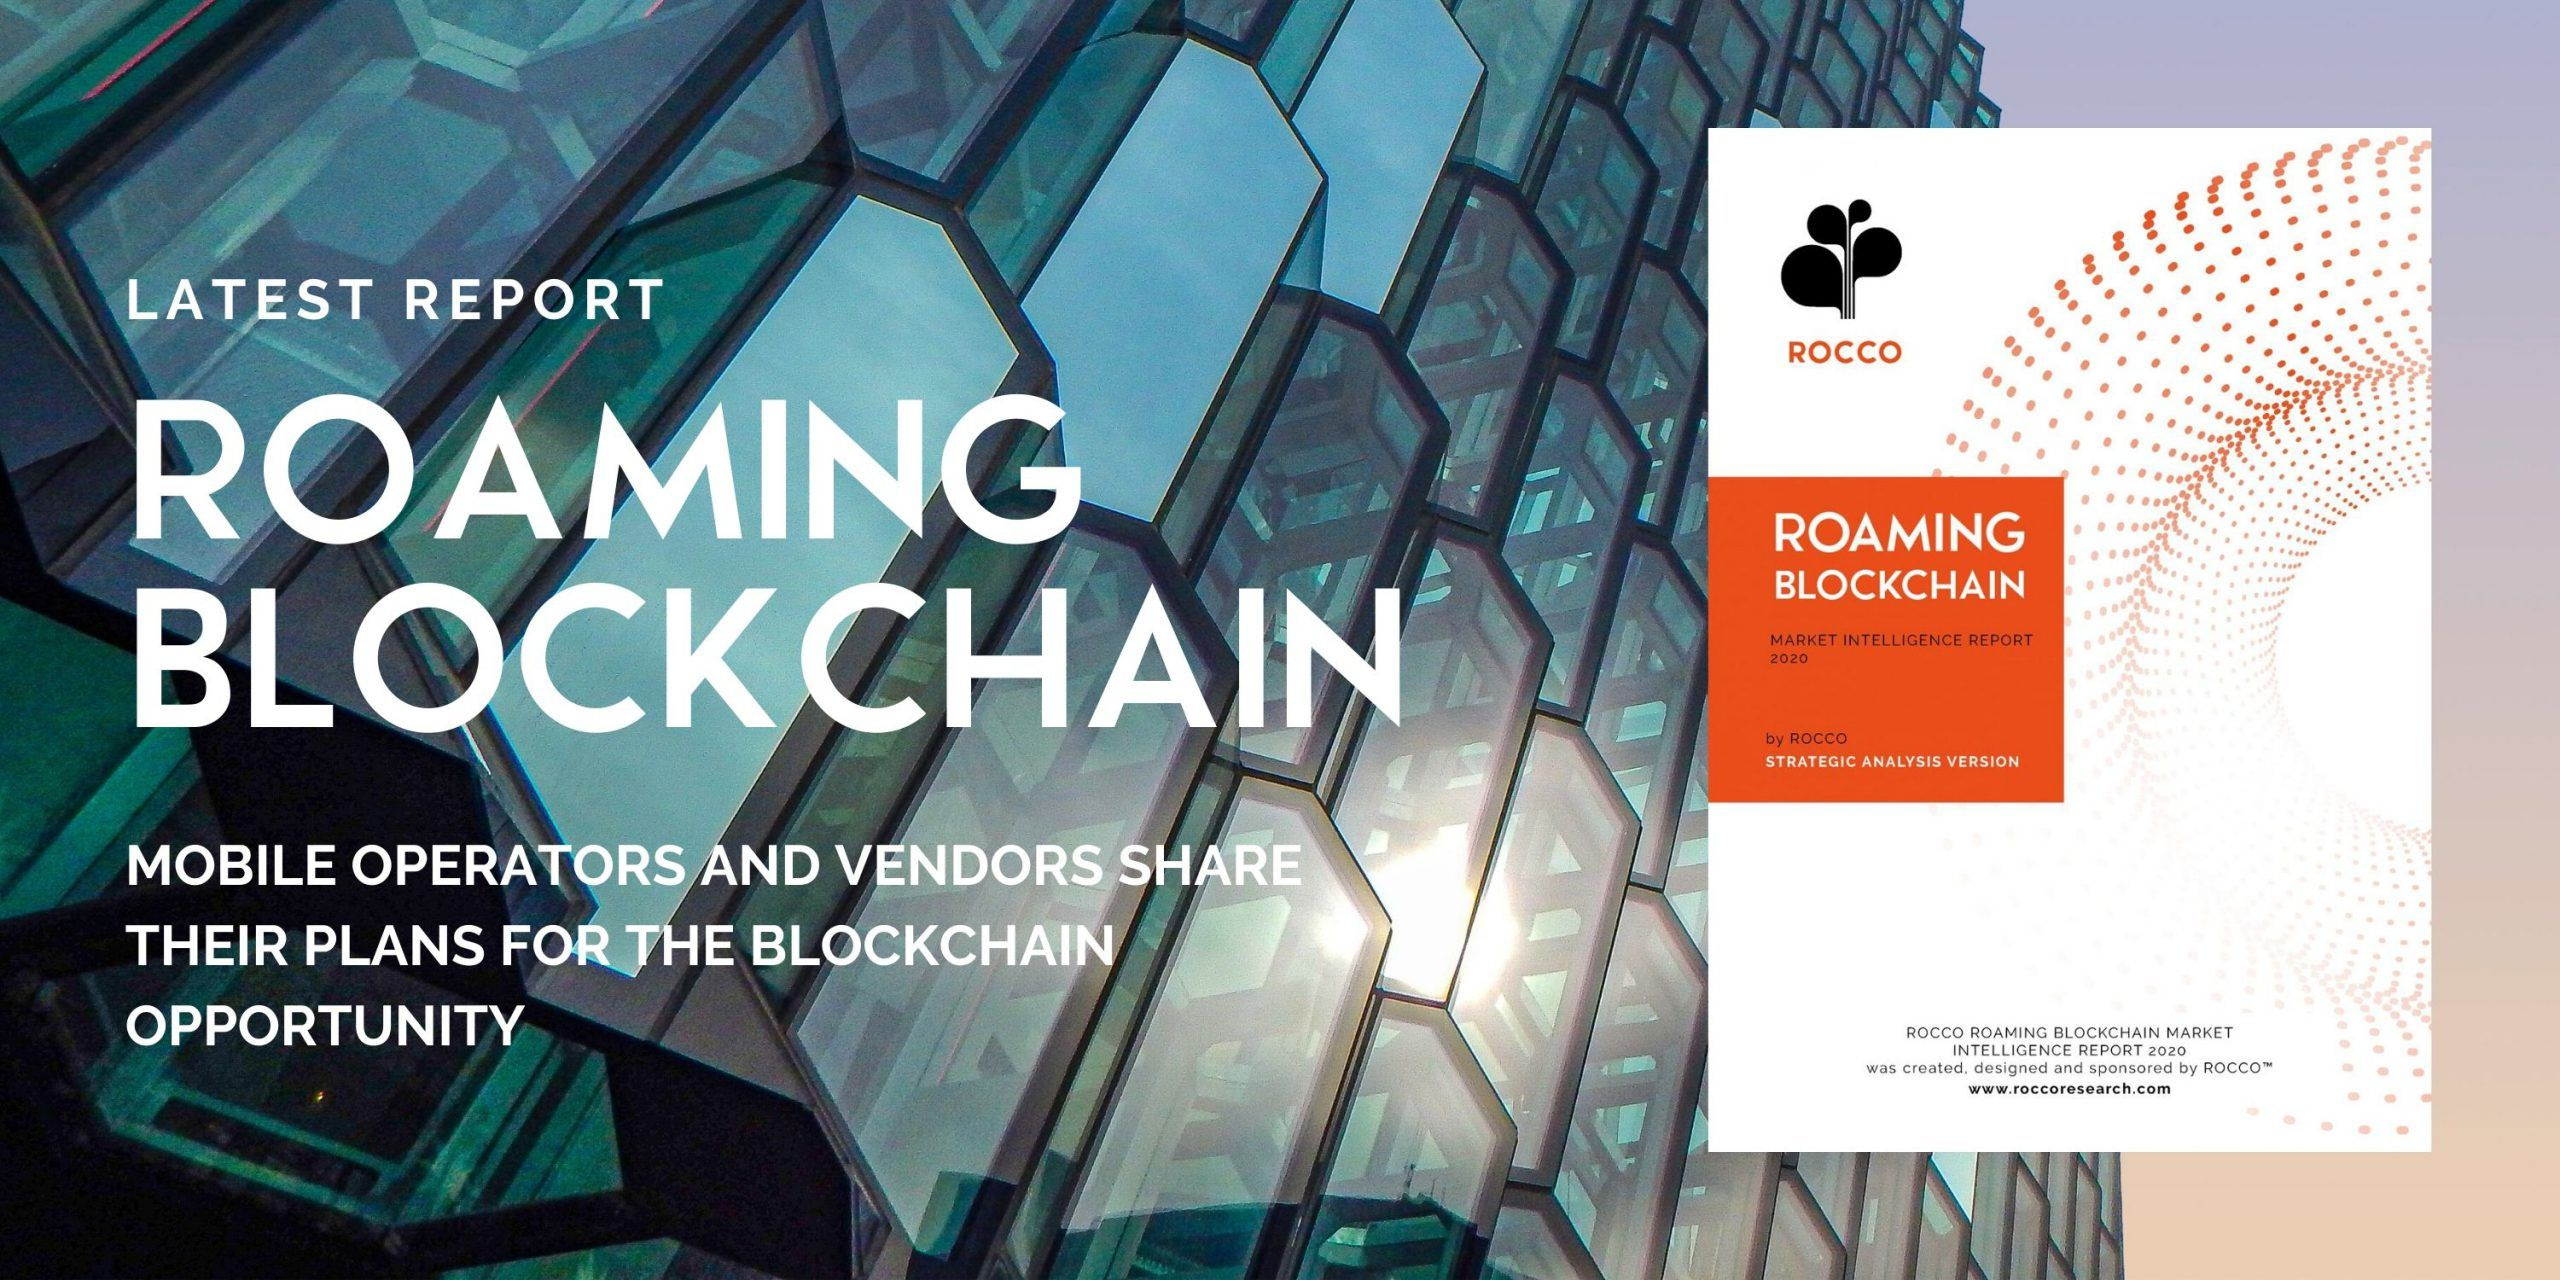 RESULTS: ROAMING BLOCKCHAIN MARKET INTELLIGENCE REPORT 2020